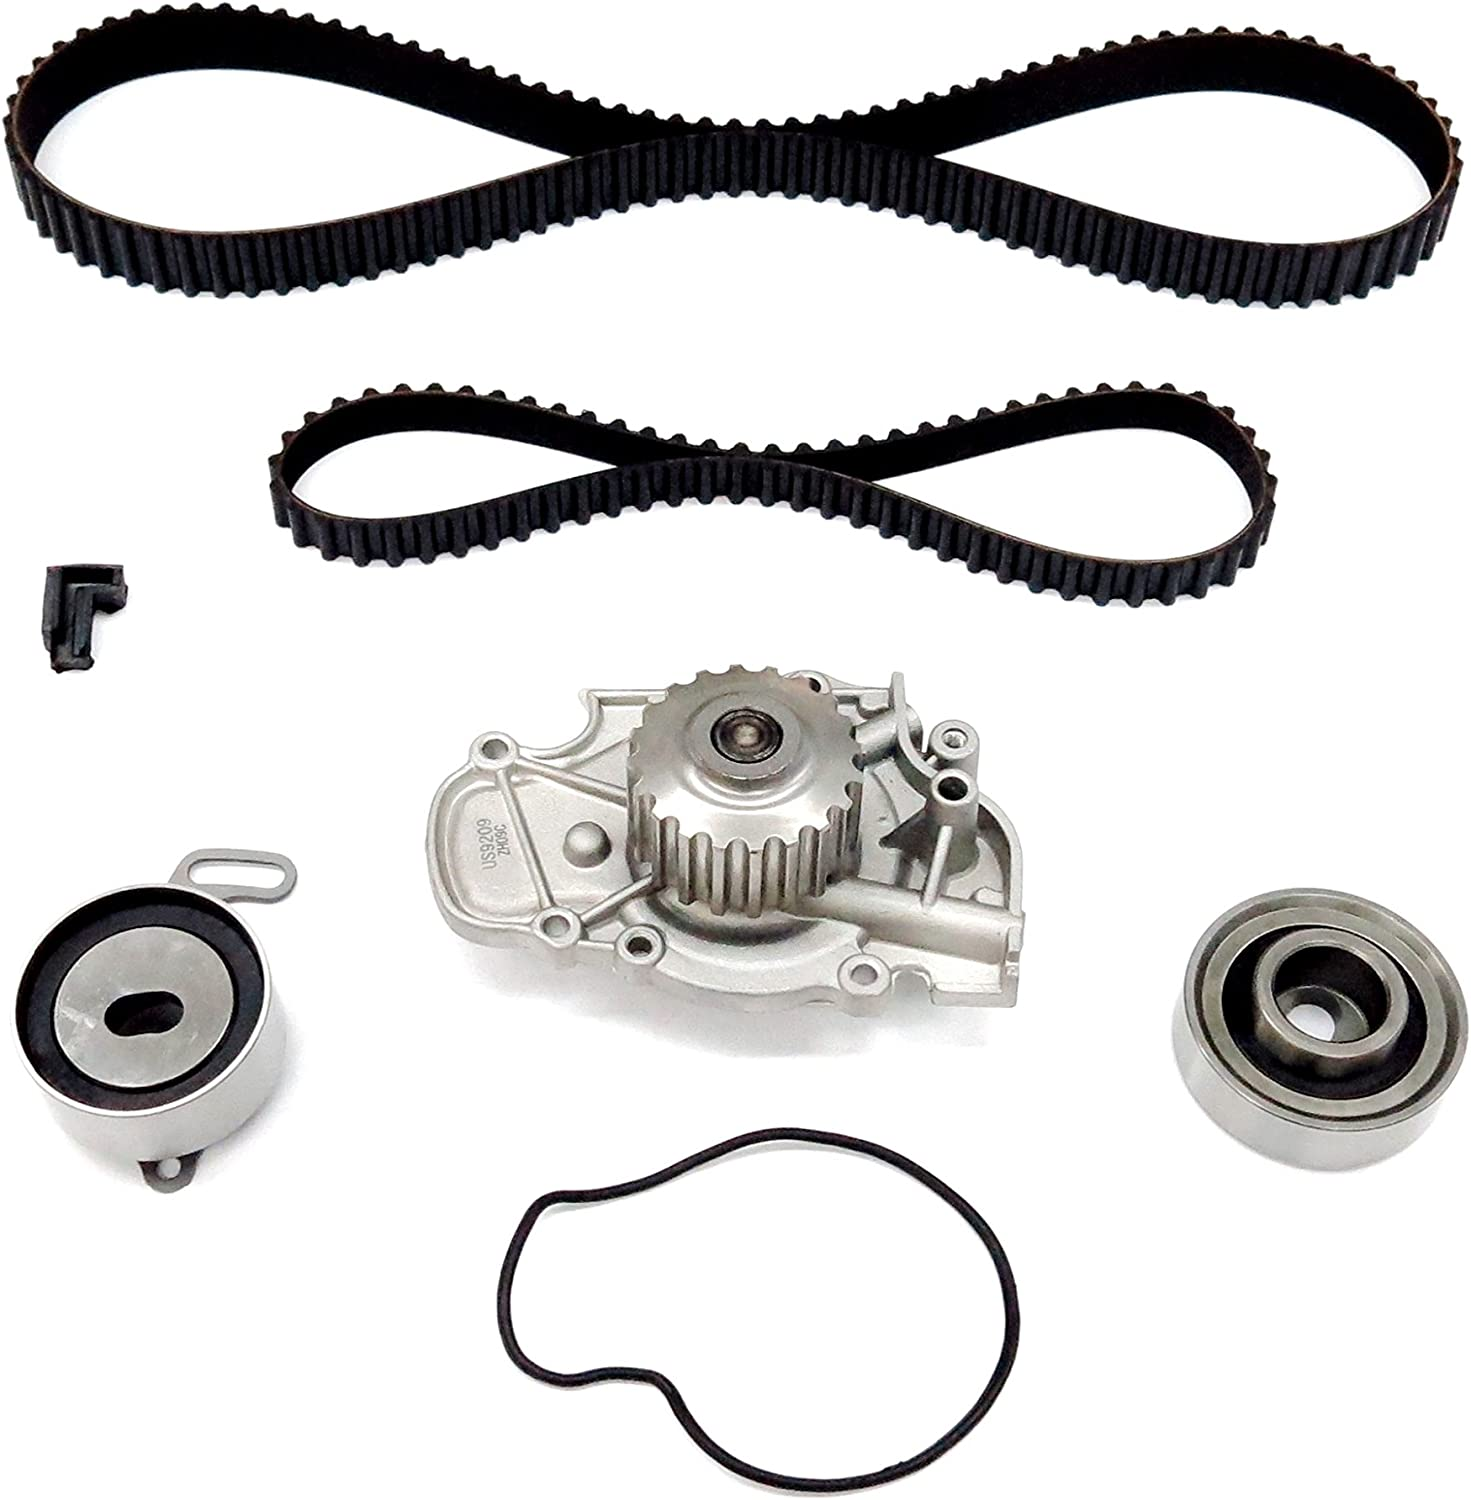 Acura and Honda V6 3.2L and 3.5L US Motor Works USTK286 Timing Kit with Water Pump